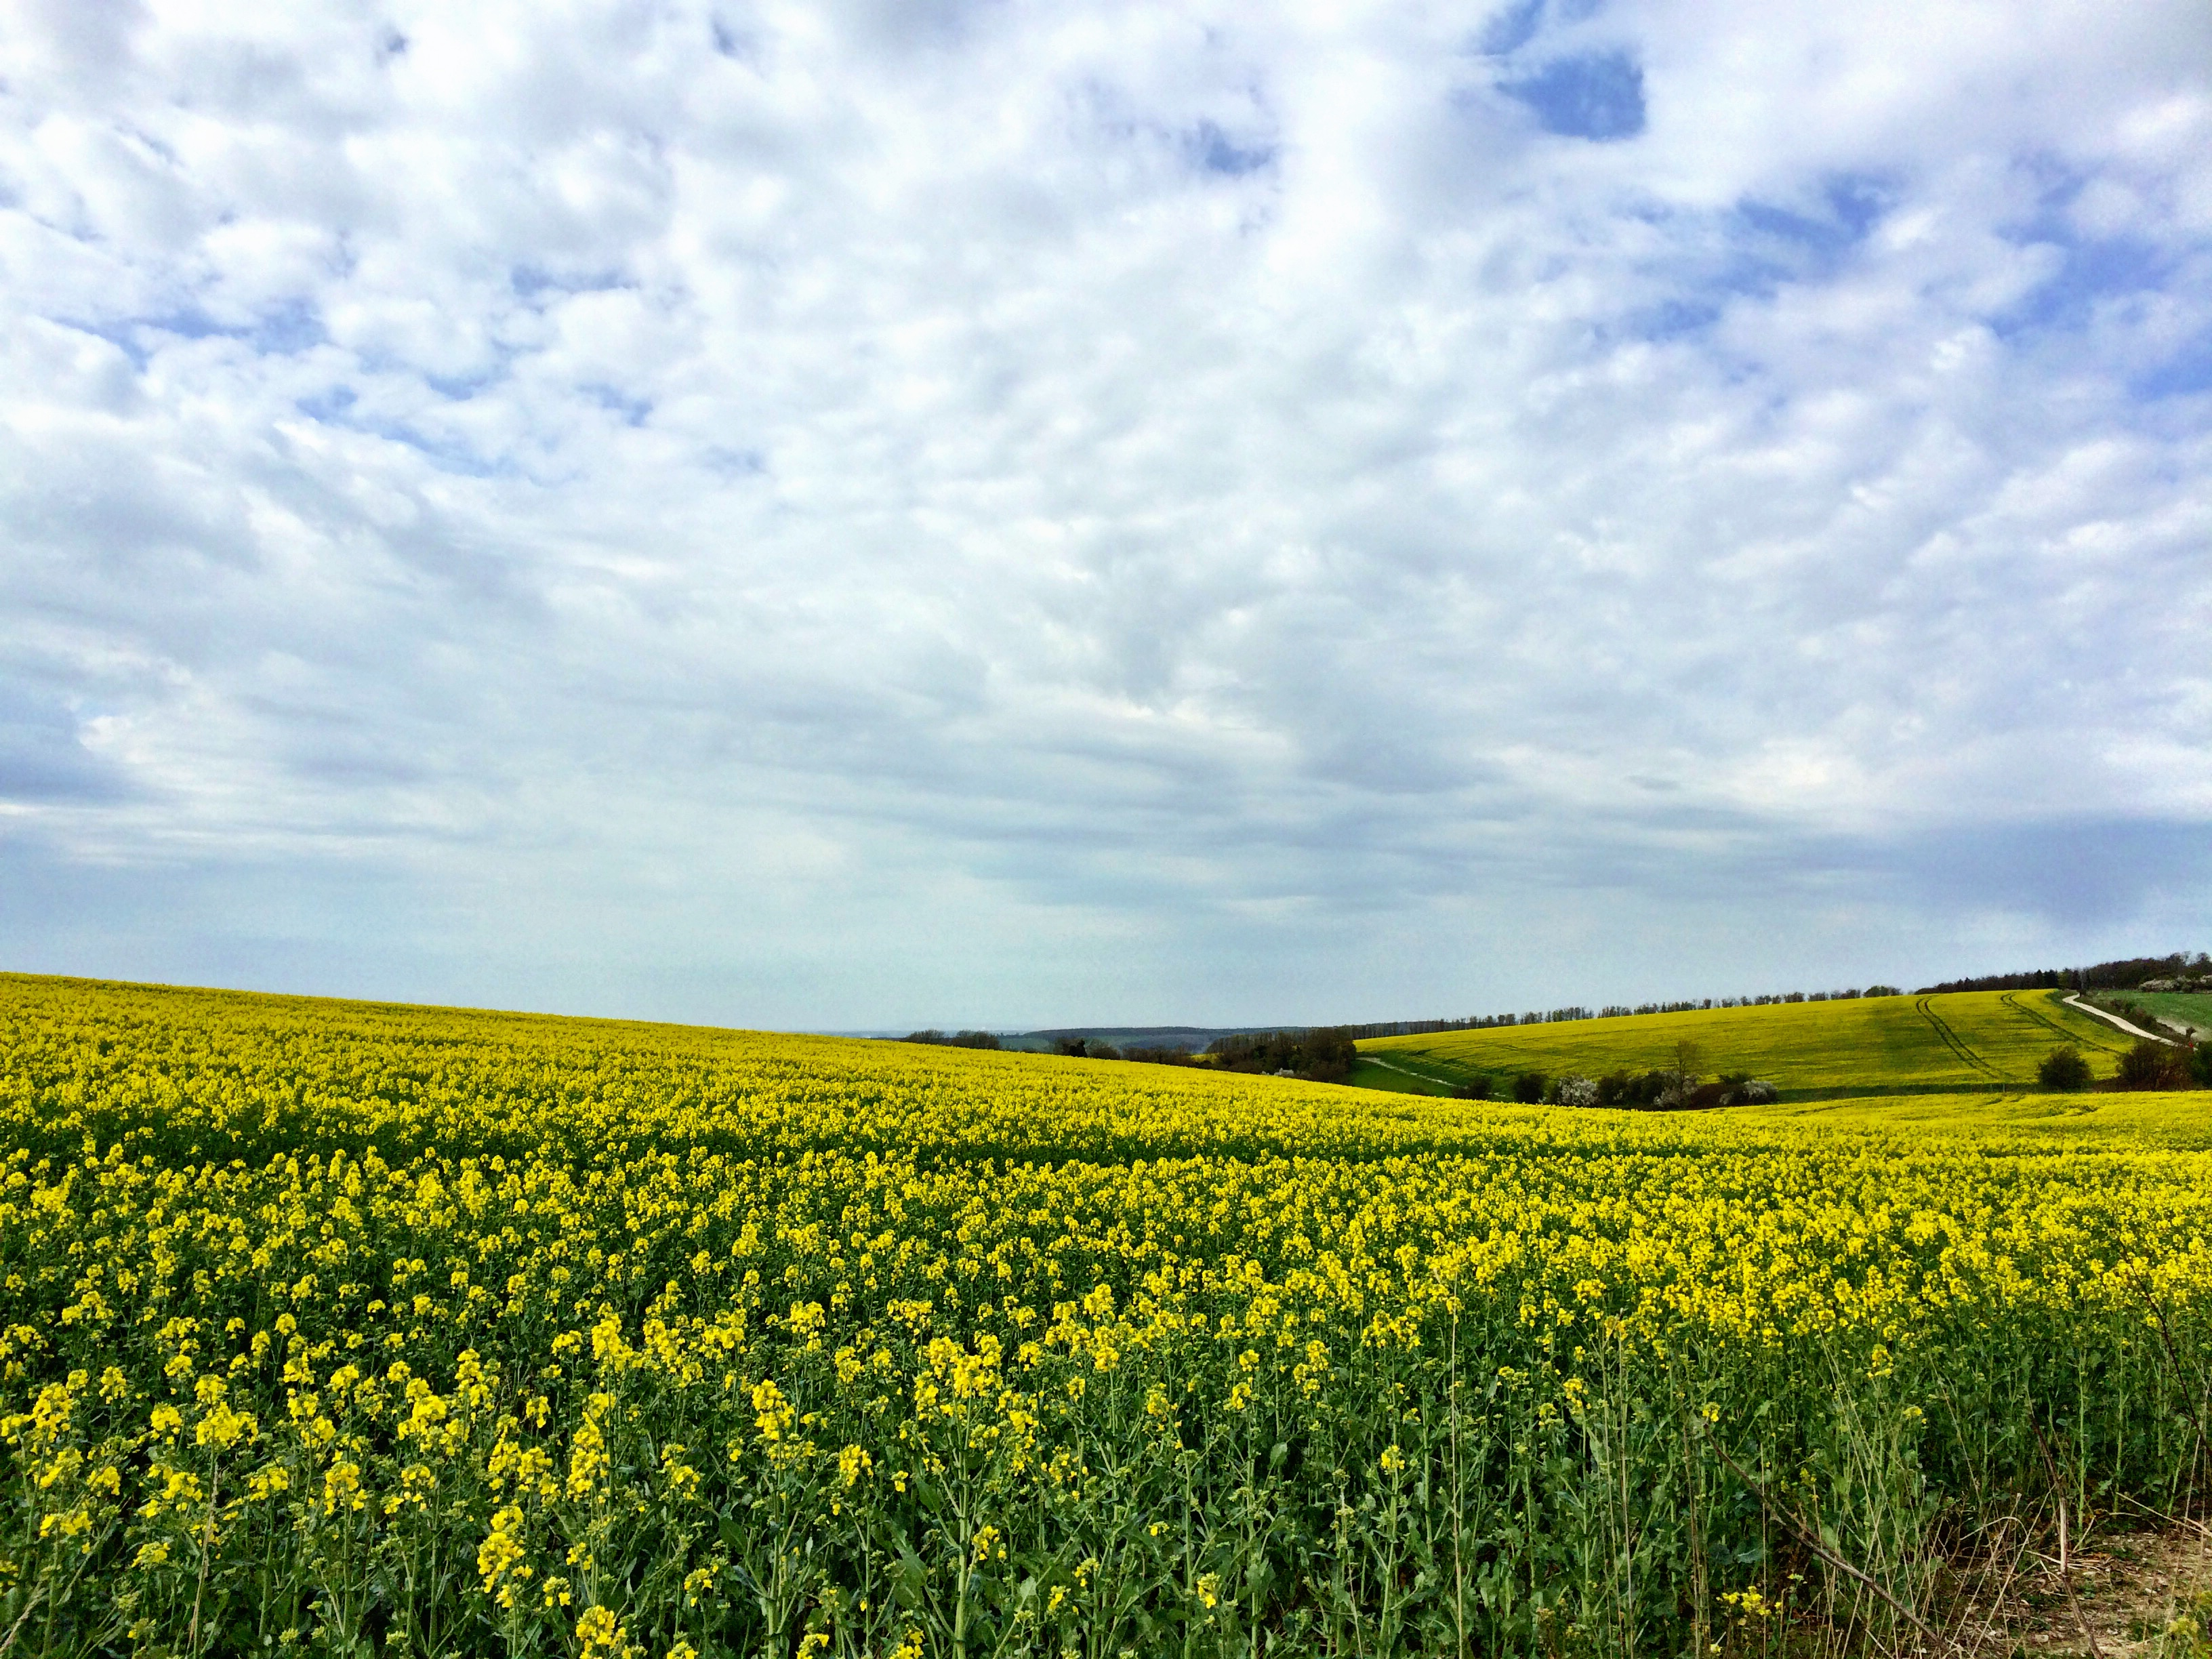 The South Downs Way – Amberley to Lancing